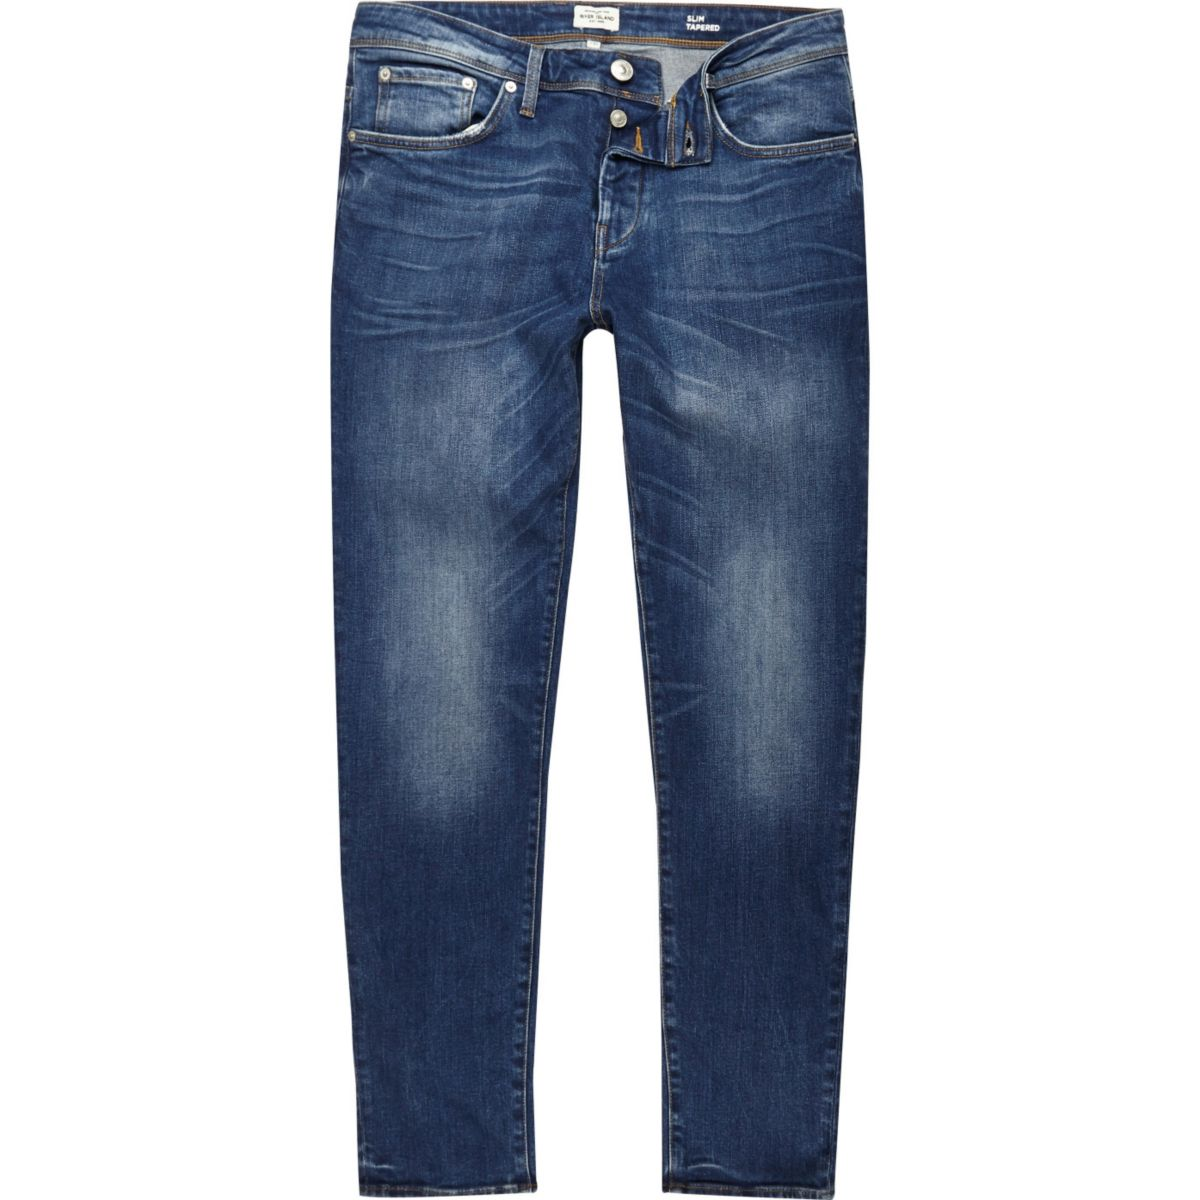 Blue Jimmy slim tapered jeans